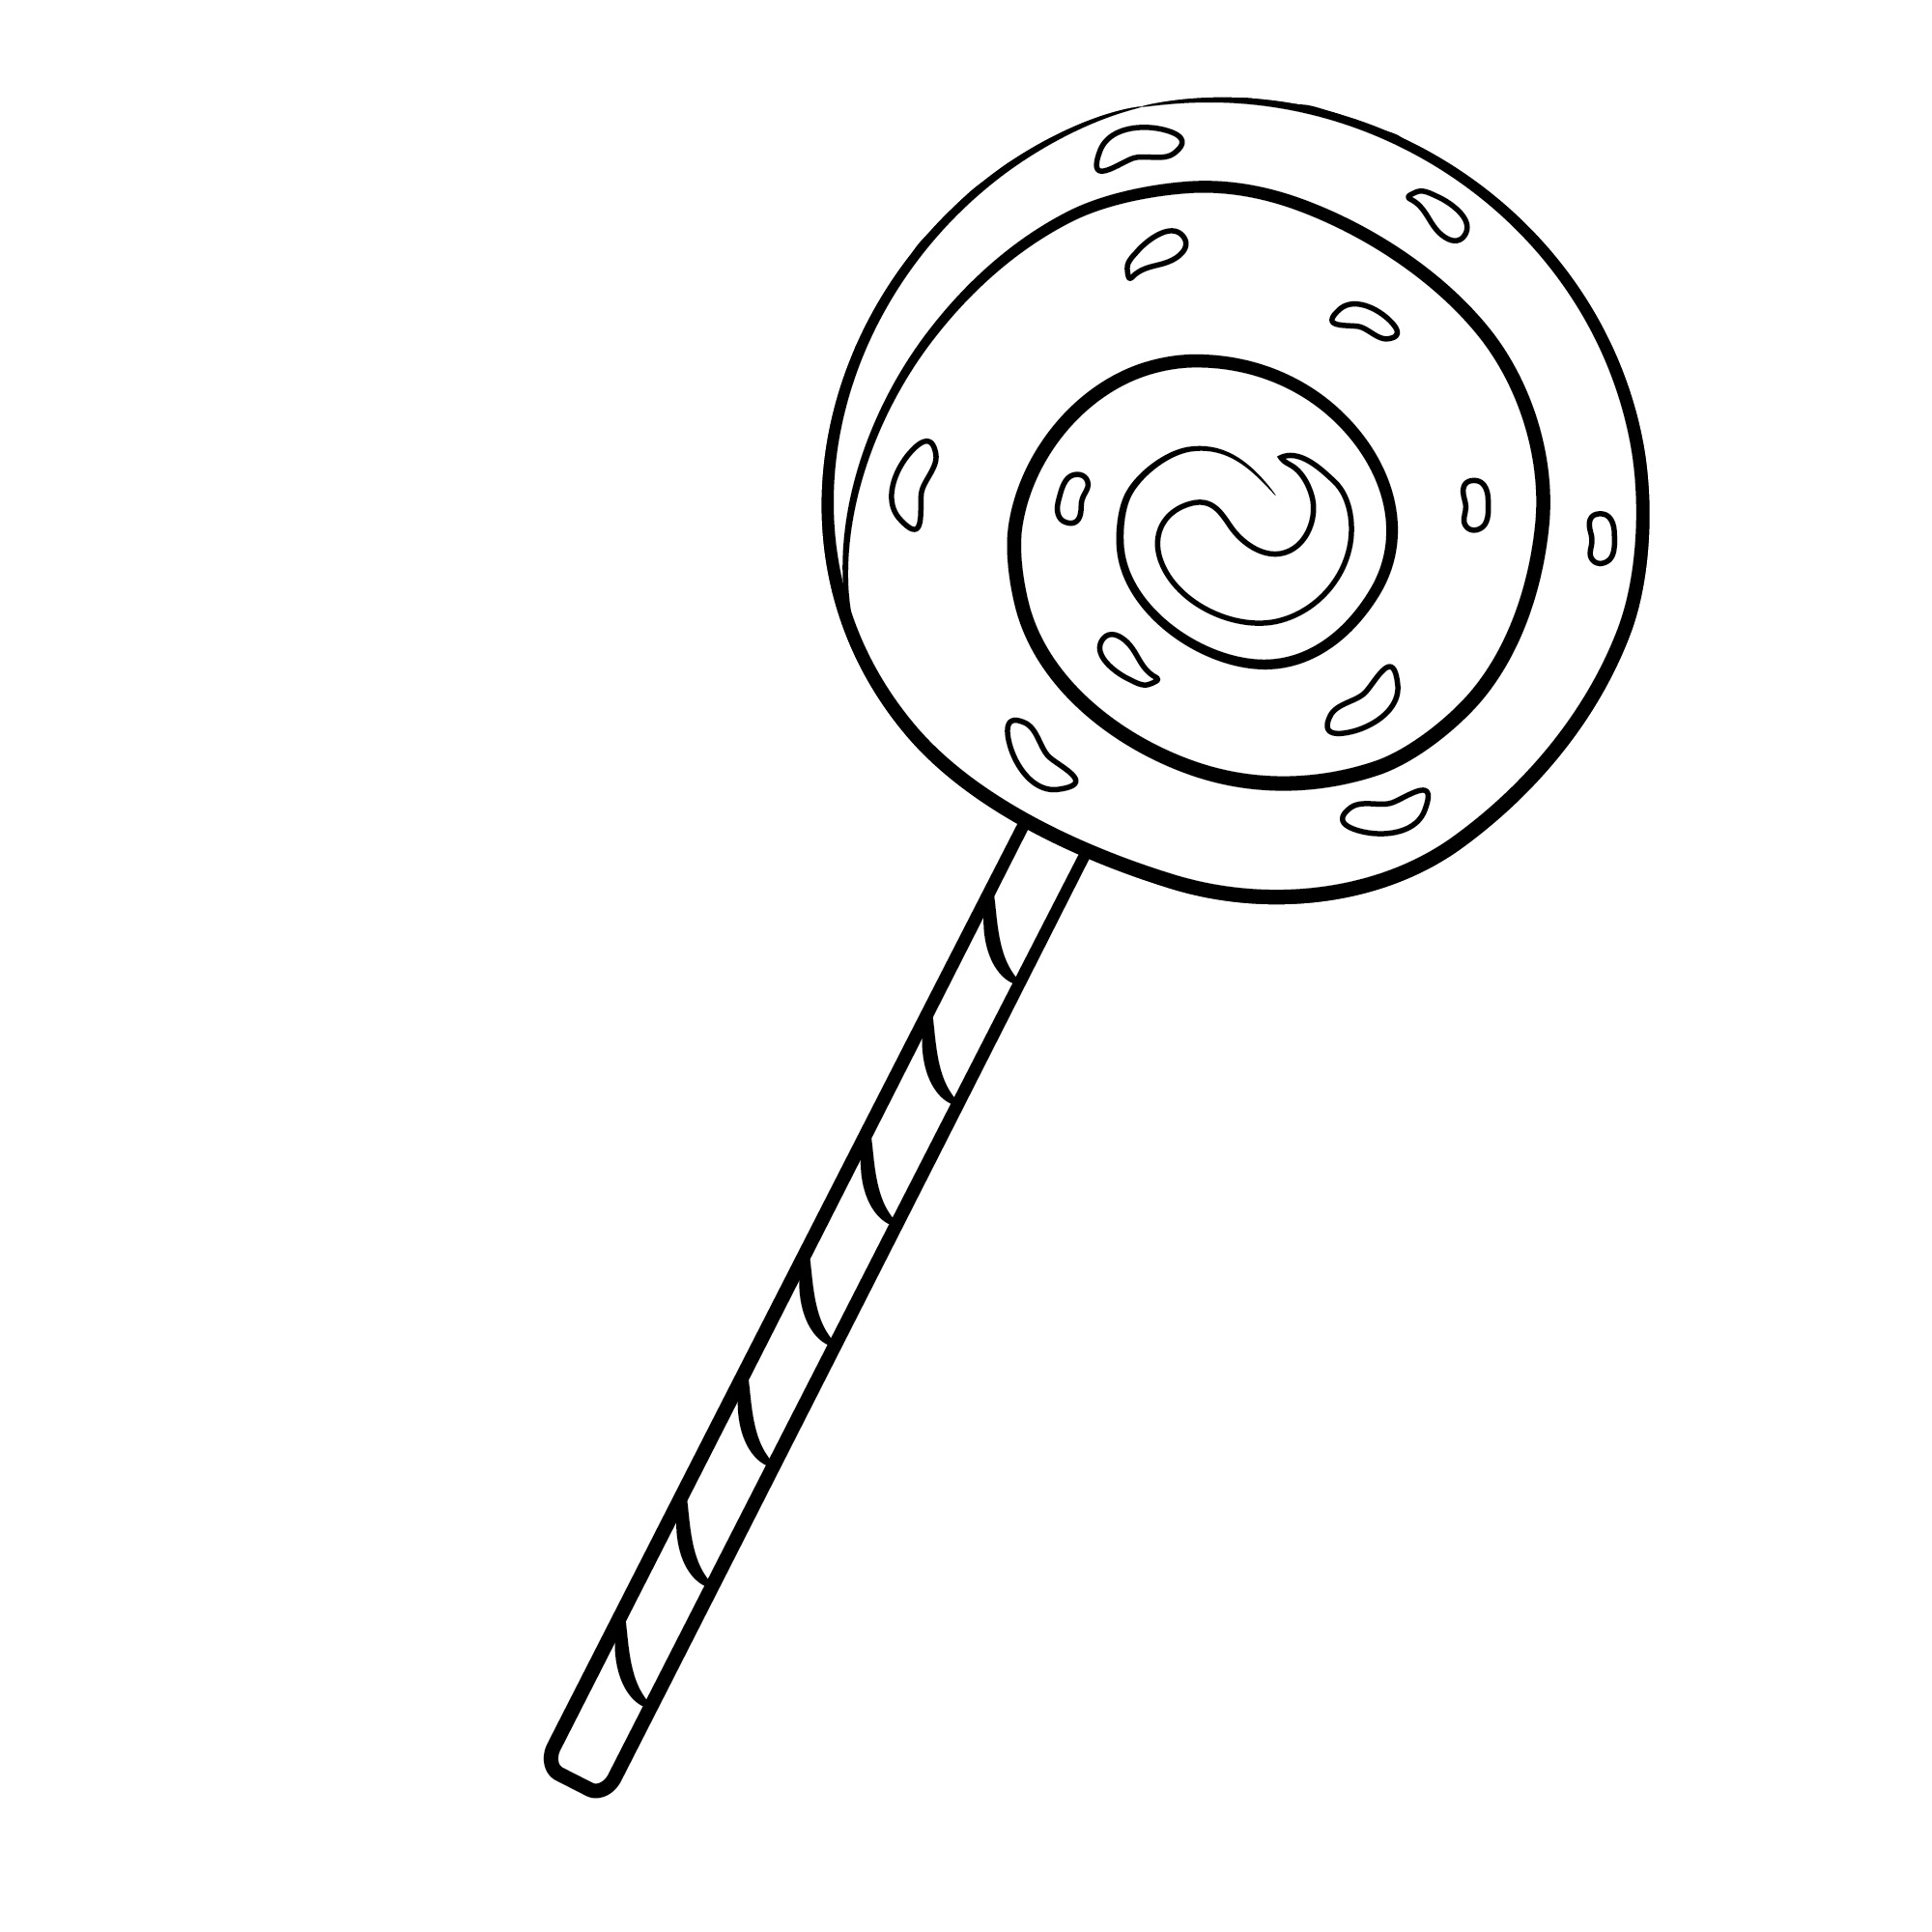 Lollipop-Coloring-Page-Printable